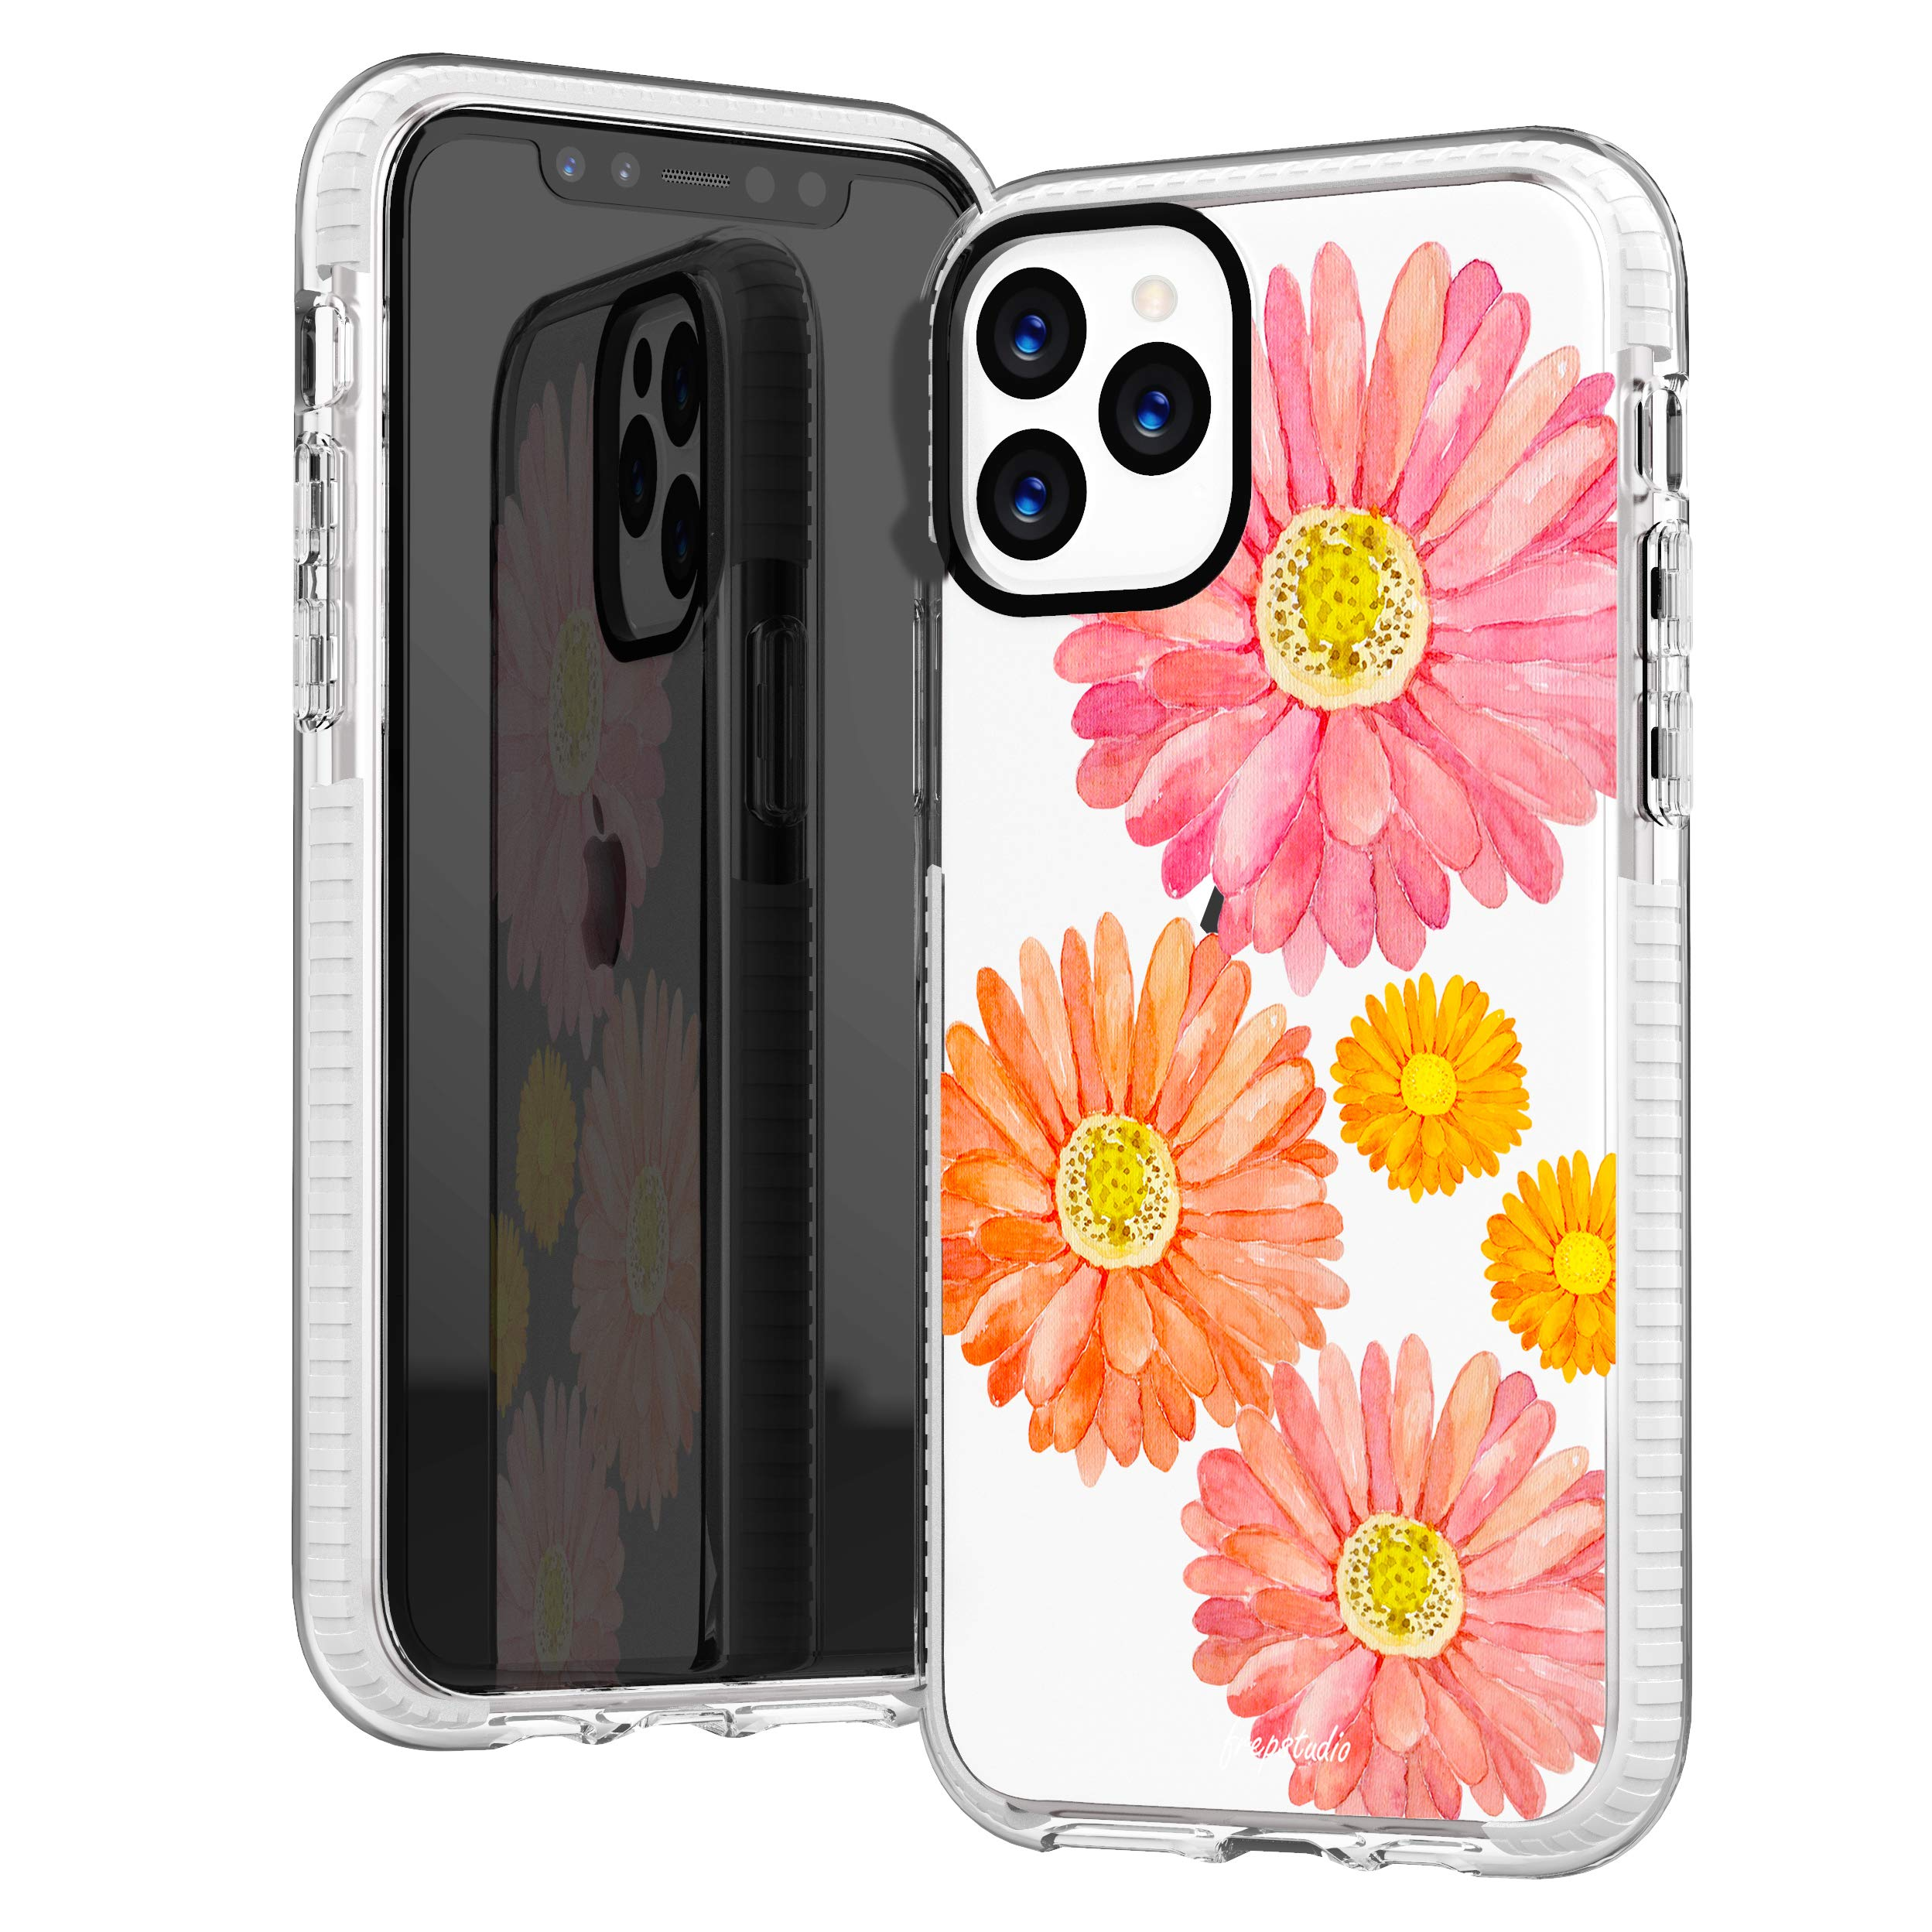 iPhone 11 Pro Max Clear Case,Women Girls Cute Trendy Hipster Summer Spring Floral Flowers Bloom Pink Orange Sunflowers Sassy Daisy Soft Protective Clear Design Case Compatible for iPhone 11 Pro Max